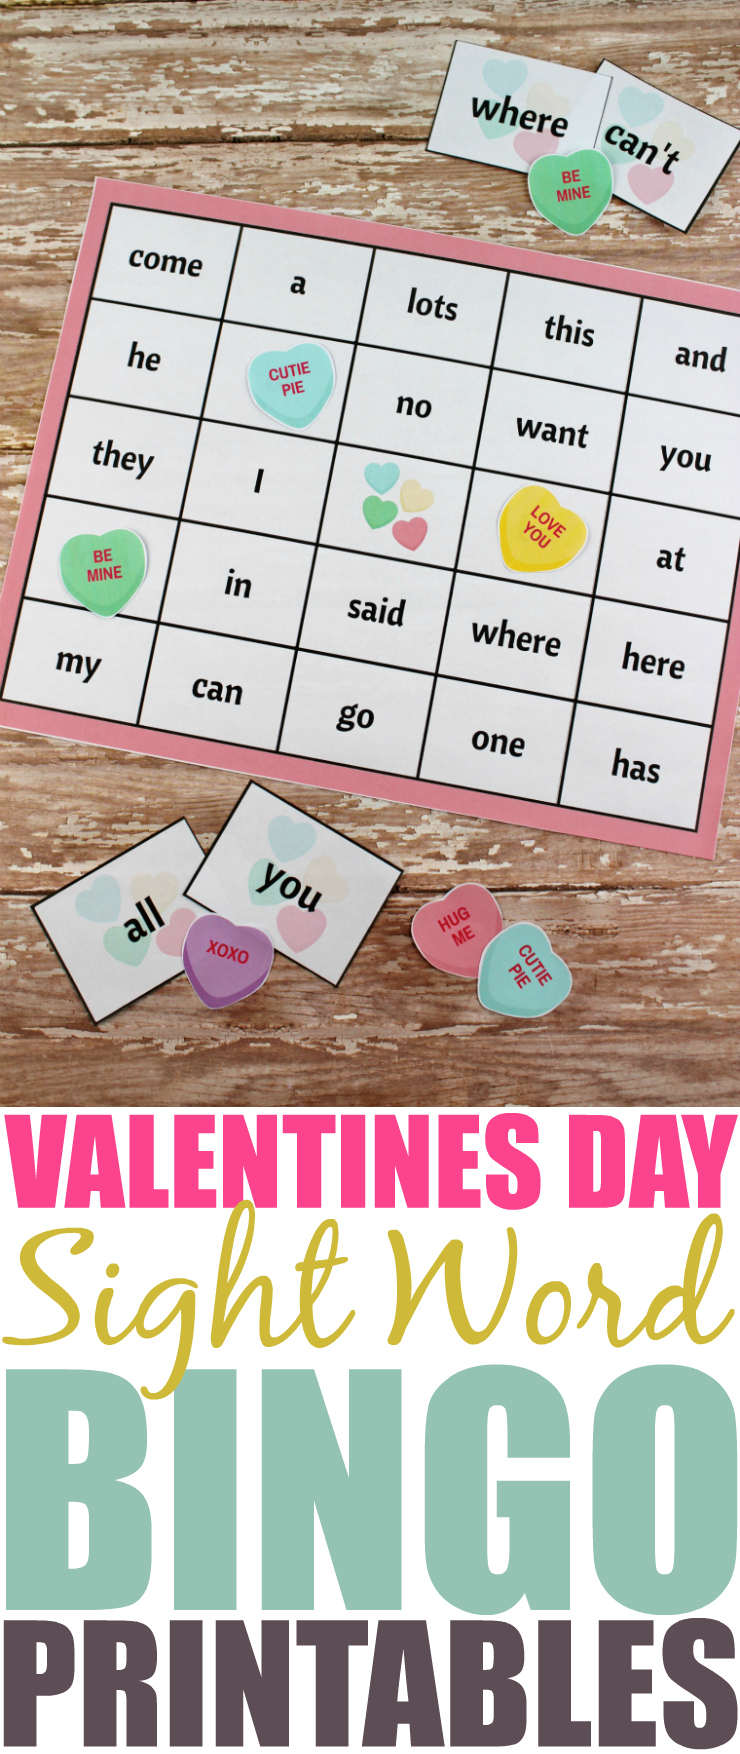 Whether you're a teacher, daycare provider, or parent, incorporate learning on Valentine's Day with this Valentine's Day themed Sight Word Bingo printable!